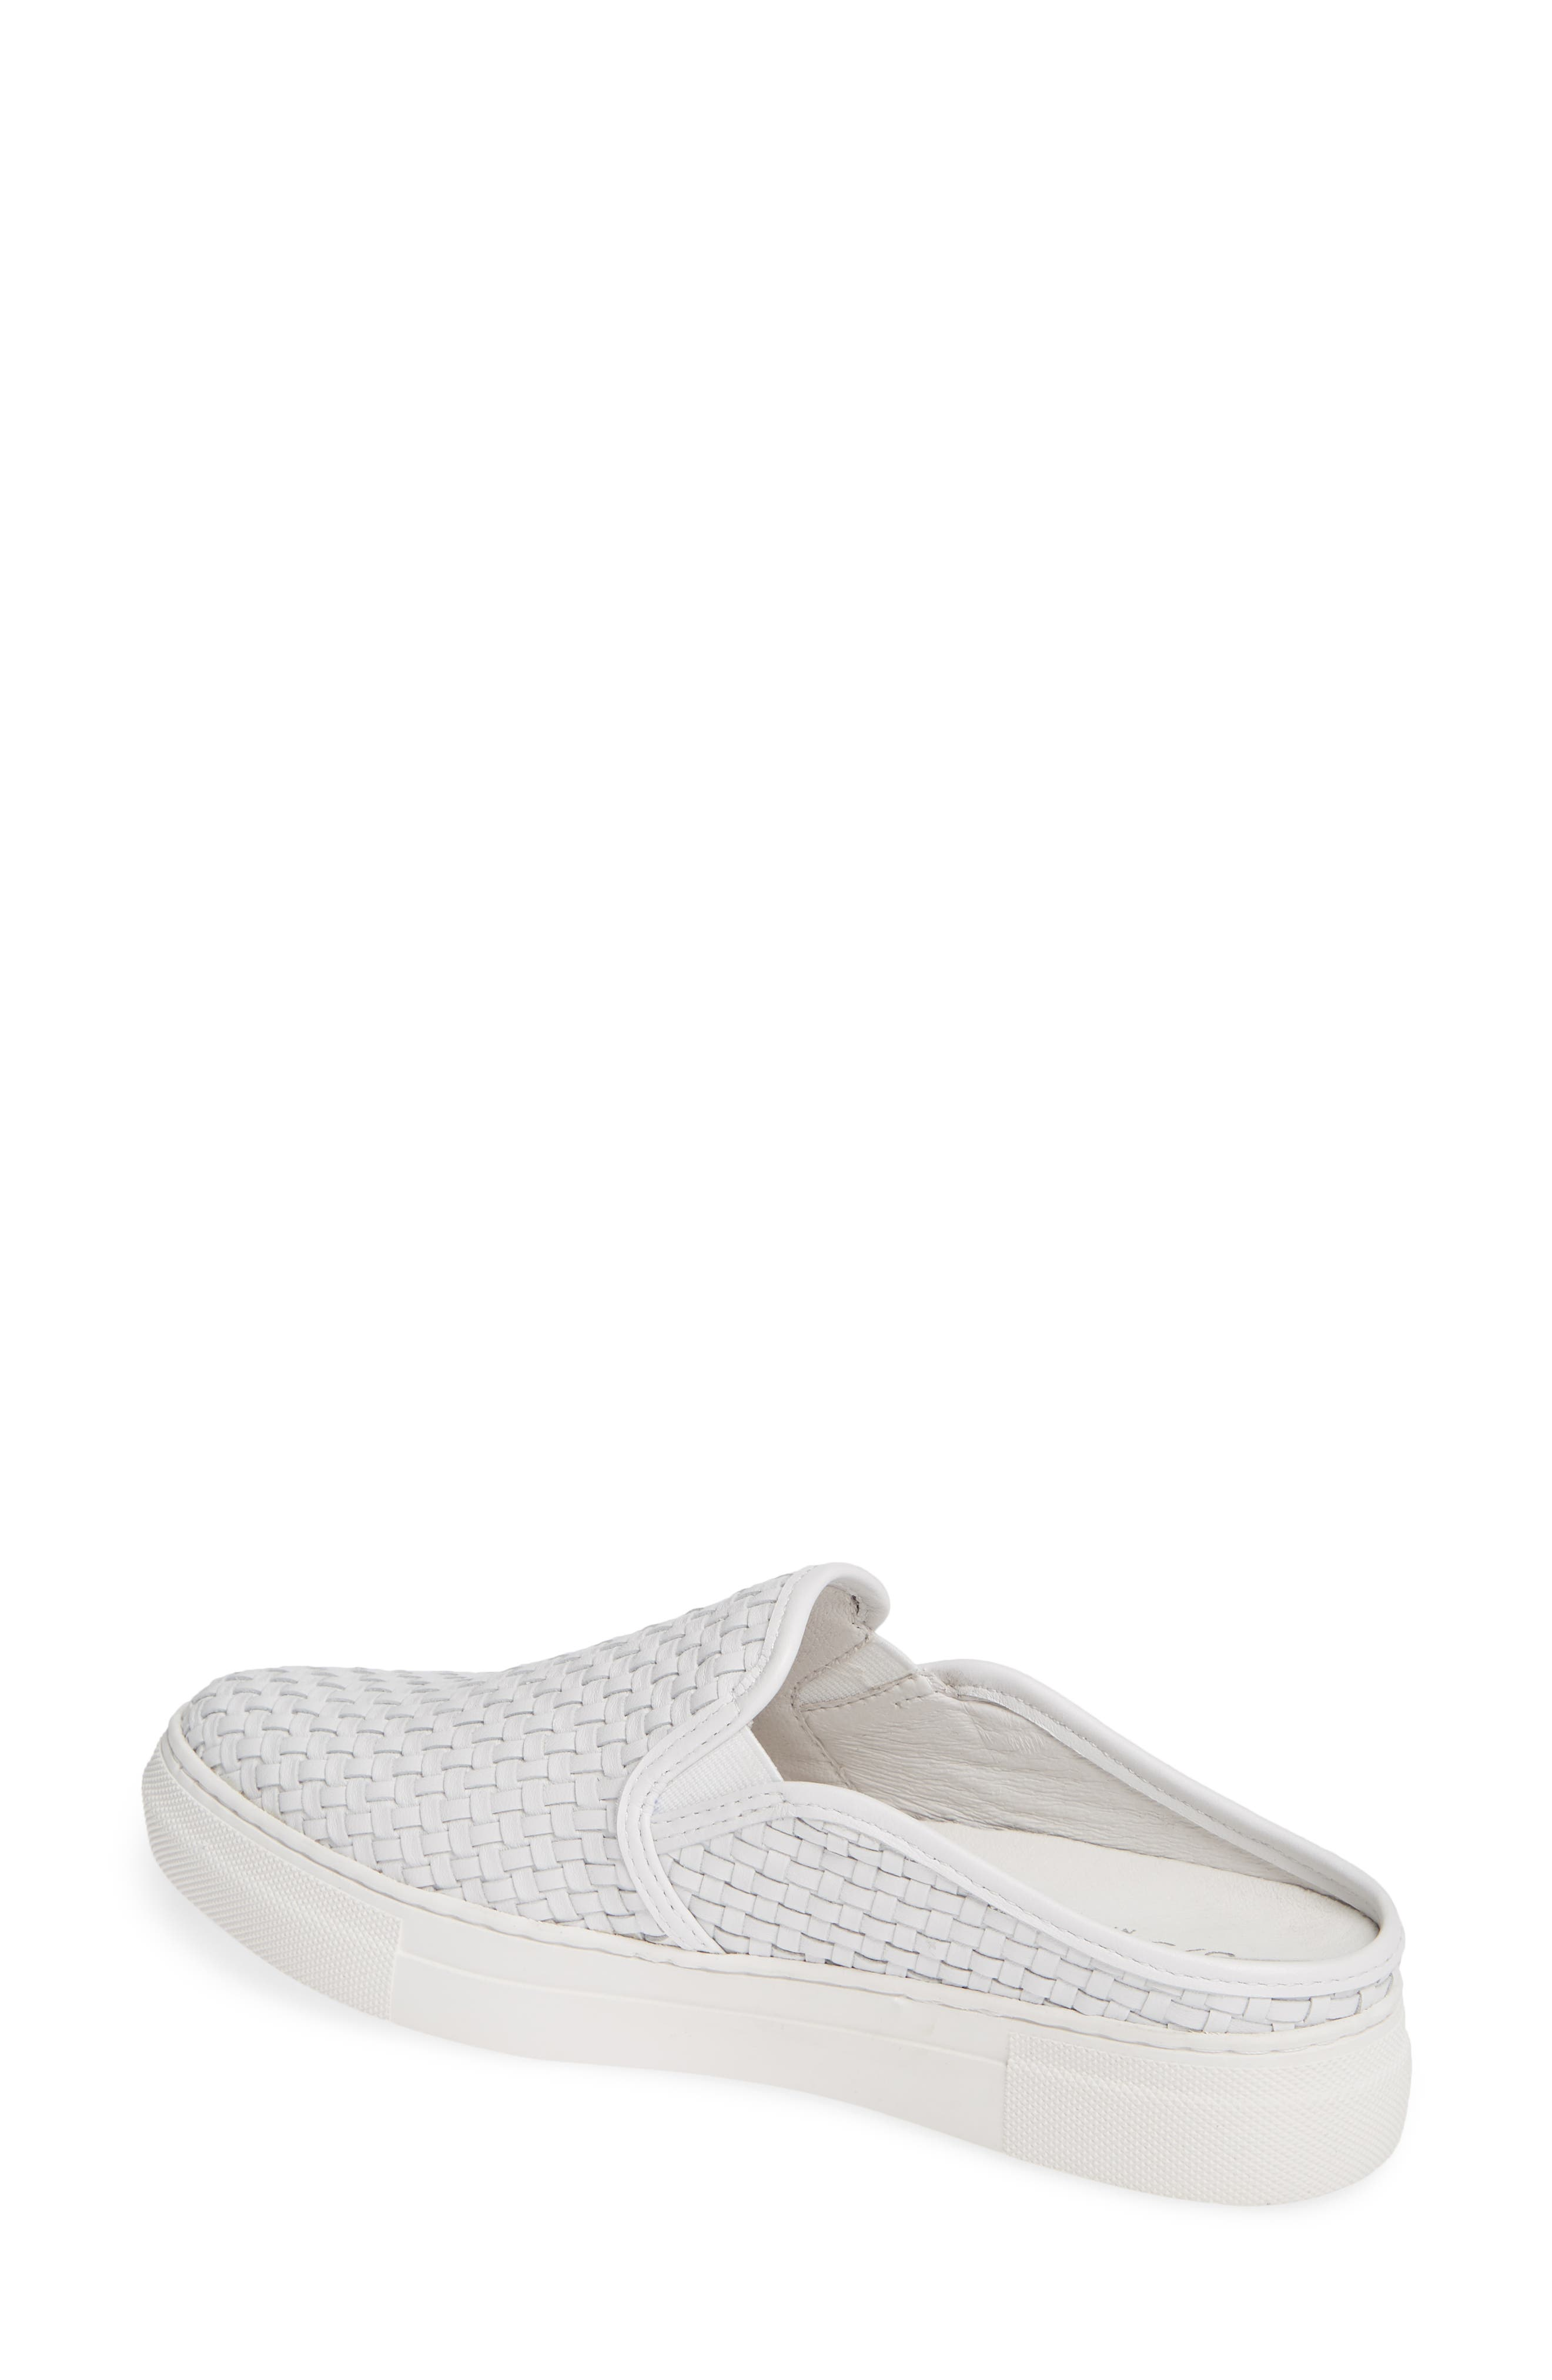 Fiona Woven Mule,                             Alternate thumbnail 2, color,                             WHITE LEATHER